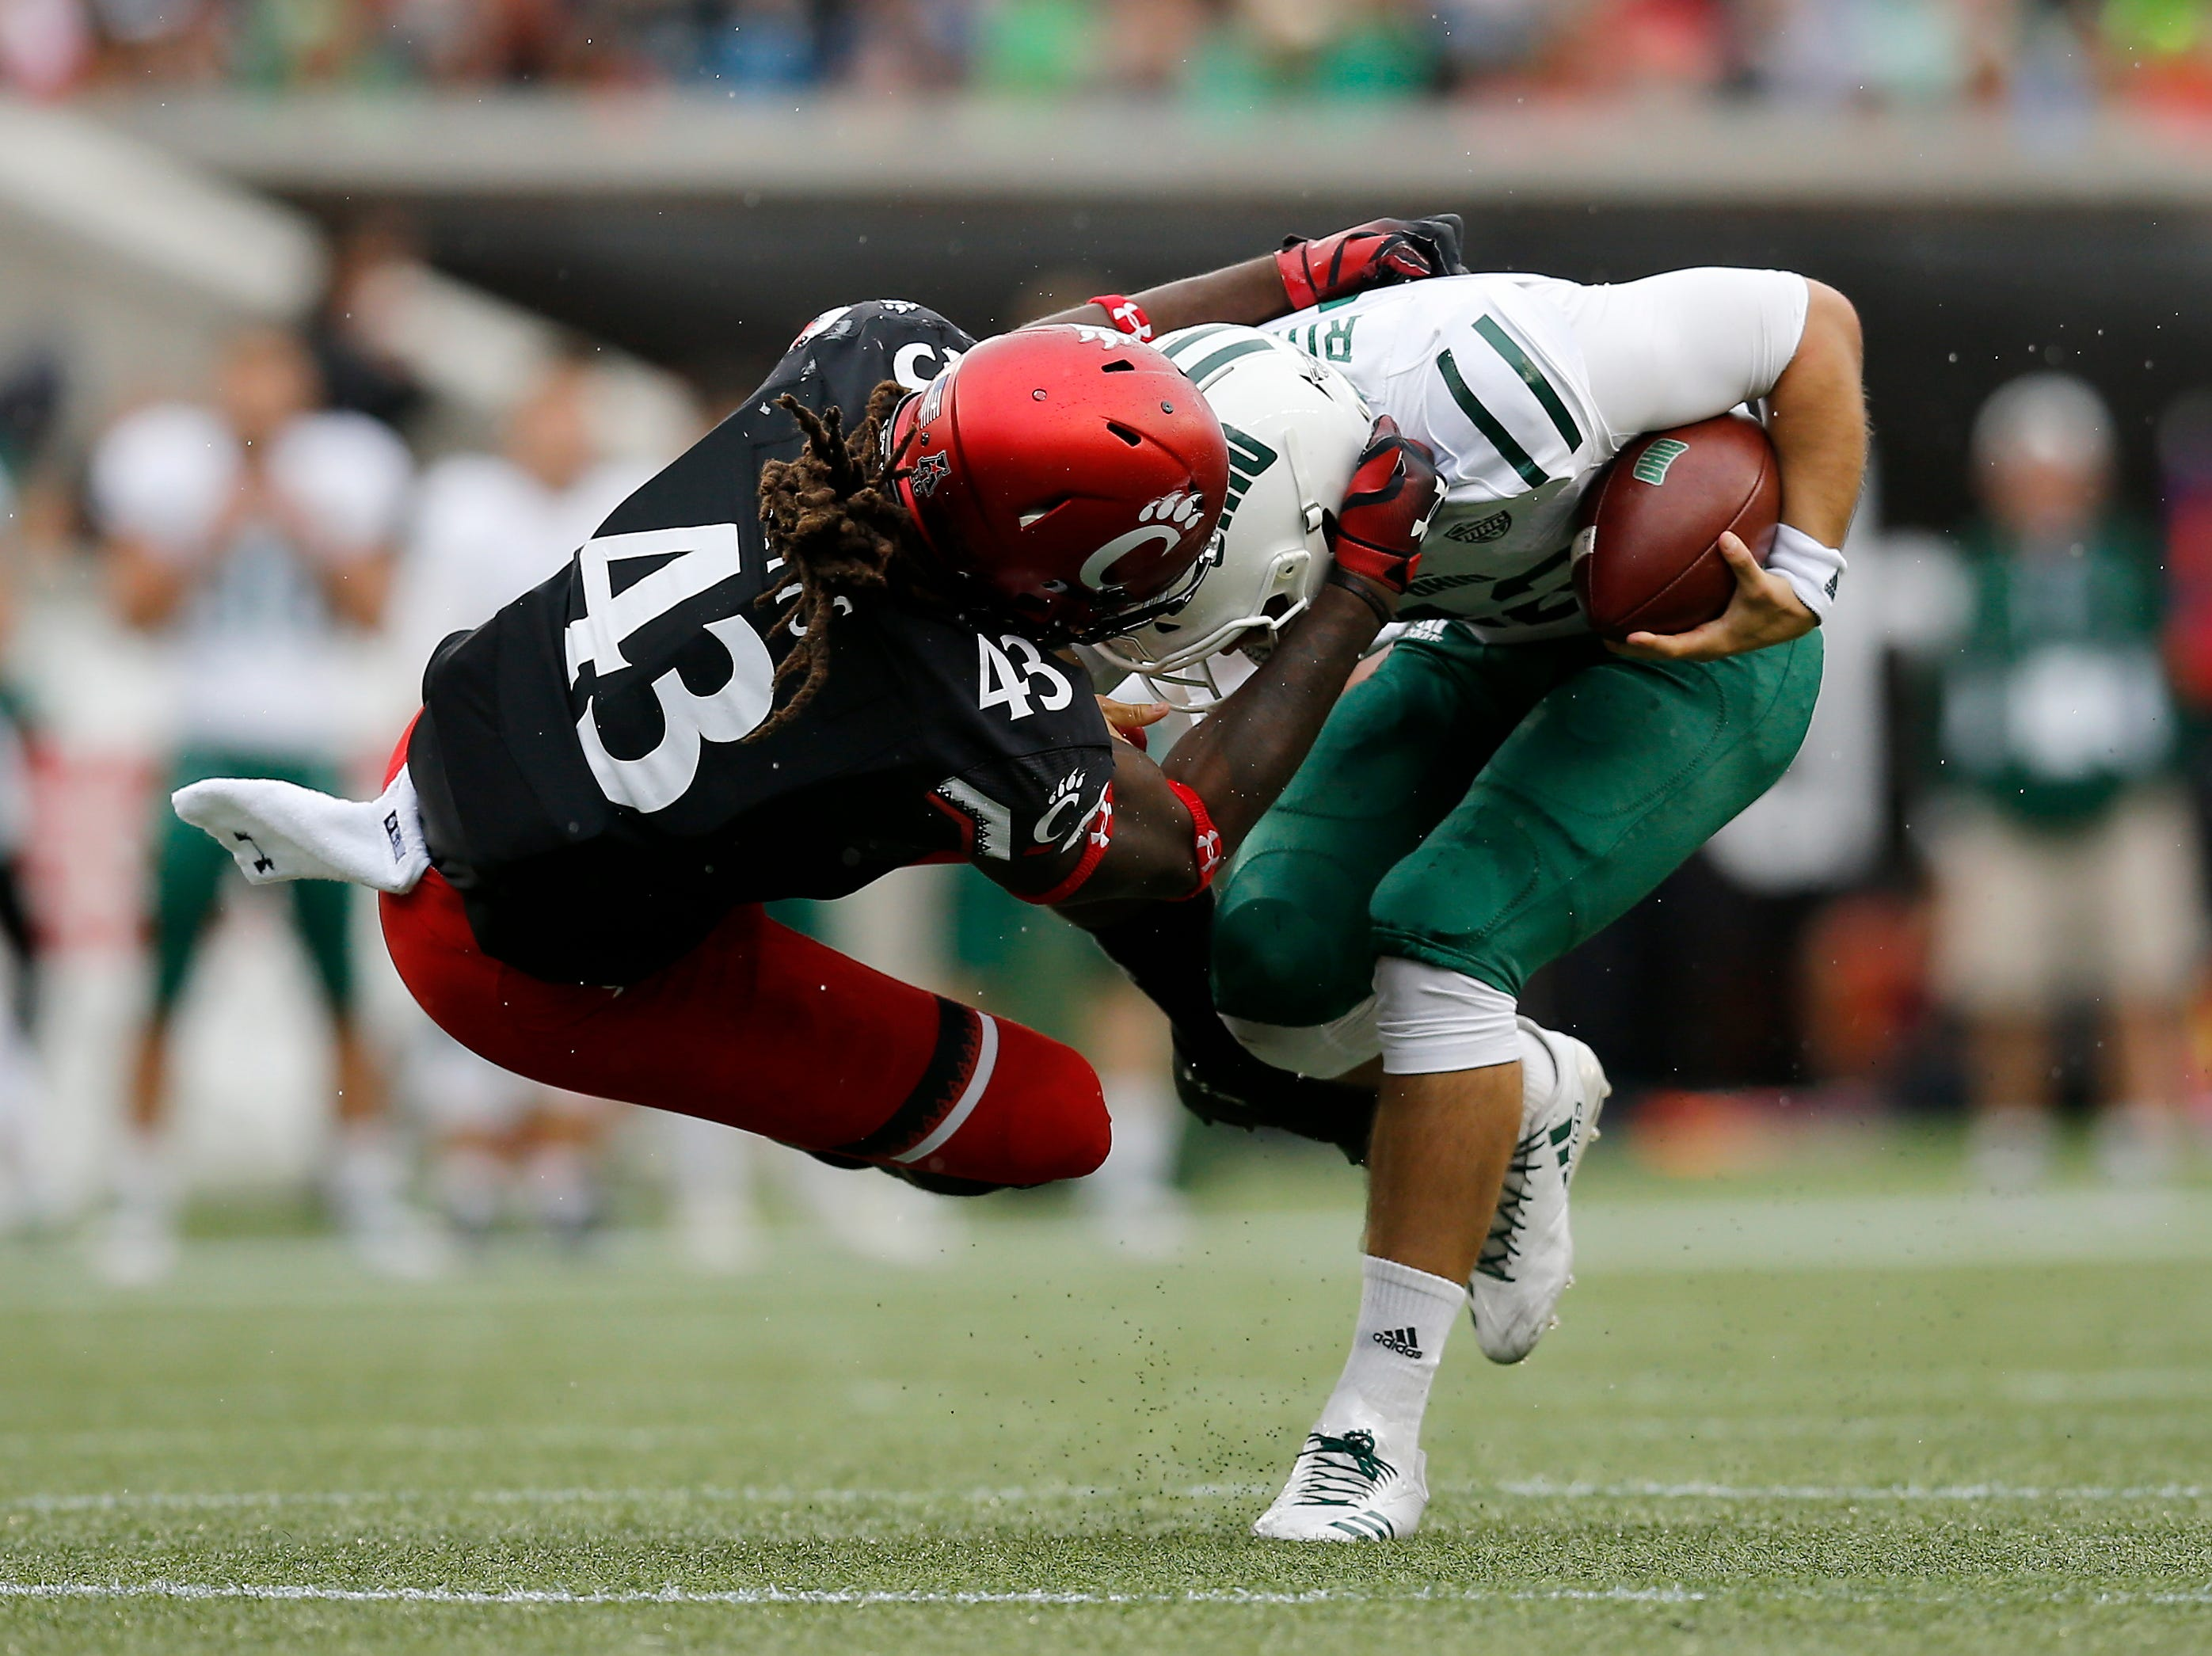 Ohio Bobcats quarterback Nathan Rourke (12) breaks a tackle from Cincinnati Bearcats defensive end Michael Pitts (43) in the second quarter of the NCAA football game between the Cincinnati Bearcats and the Ohio Bobcats at Nippert Stadium on the University of Cincinnati campus in Cincinnati on Saturday, Sept. 22, 2018. The Bobcats led 24-7 at halftime.